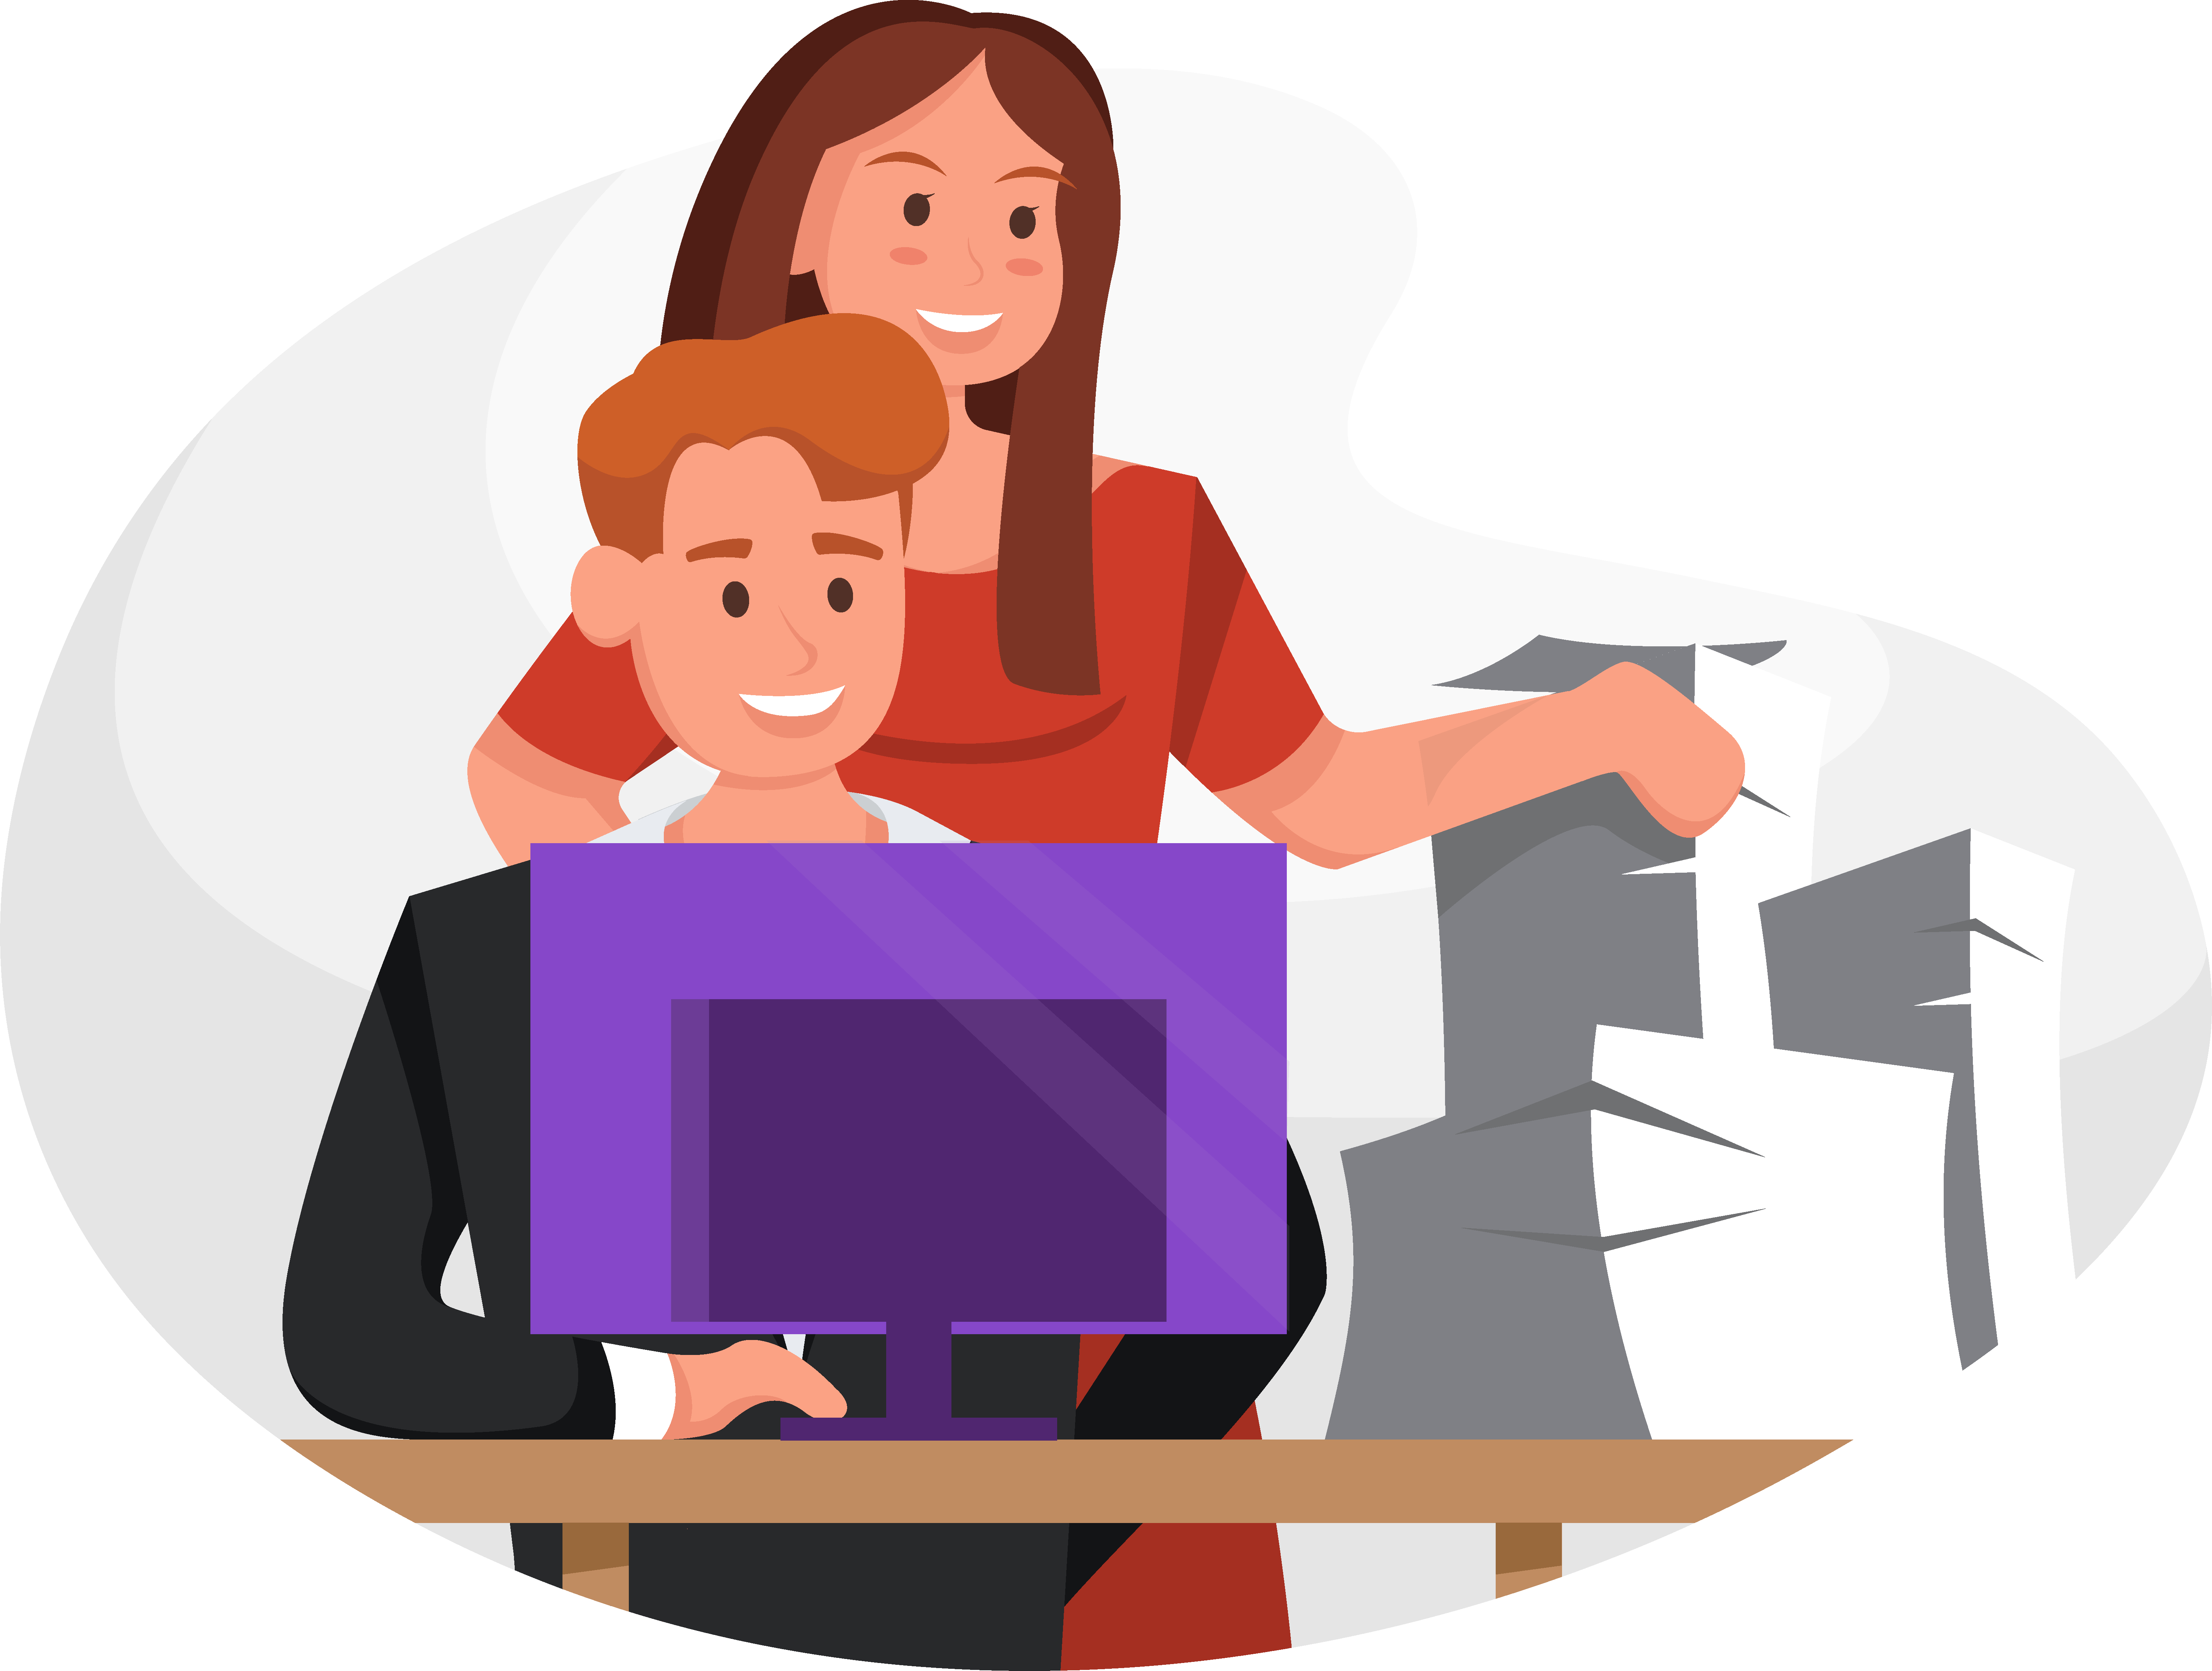 Illustration of a woman standing behind a man at the computer next to a pile of papers.